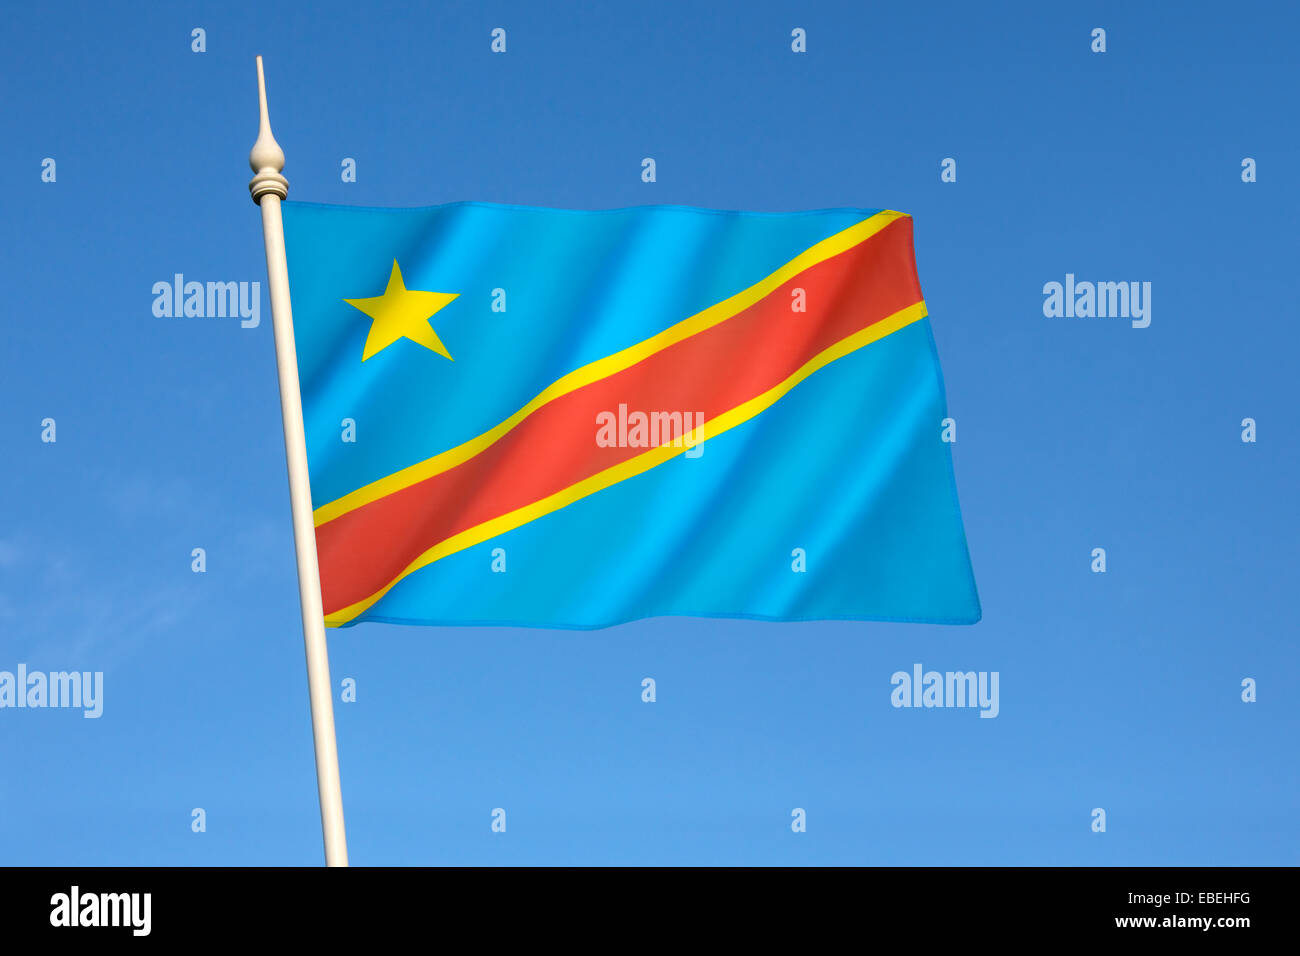 Flag of the Democratic Republic of the Congo (Congo-Kinshasa, DROC) - Stock Image